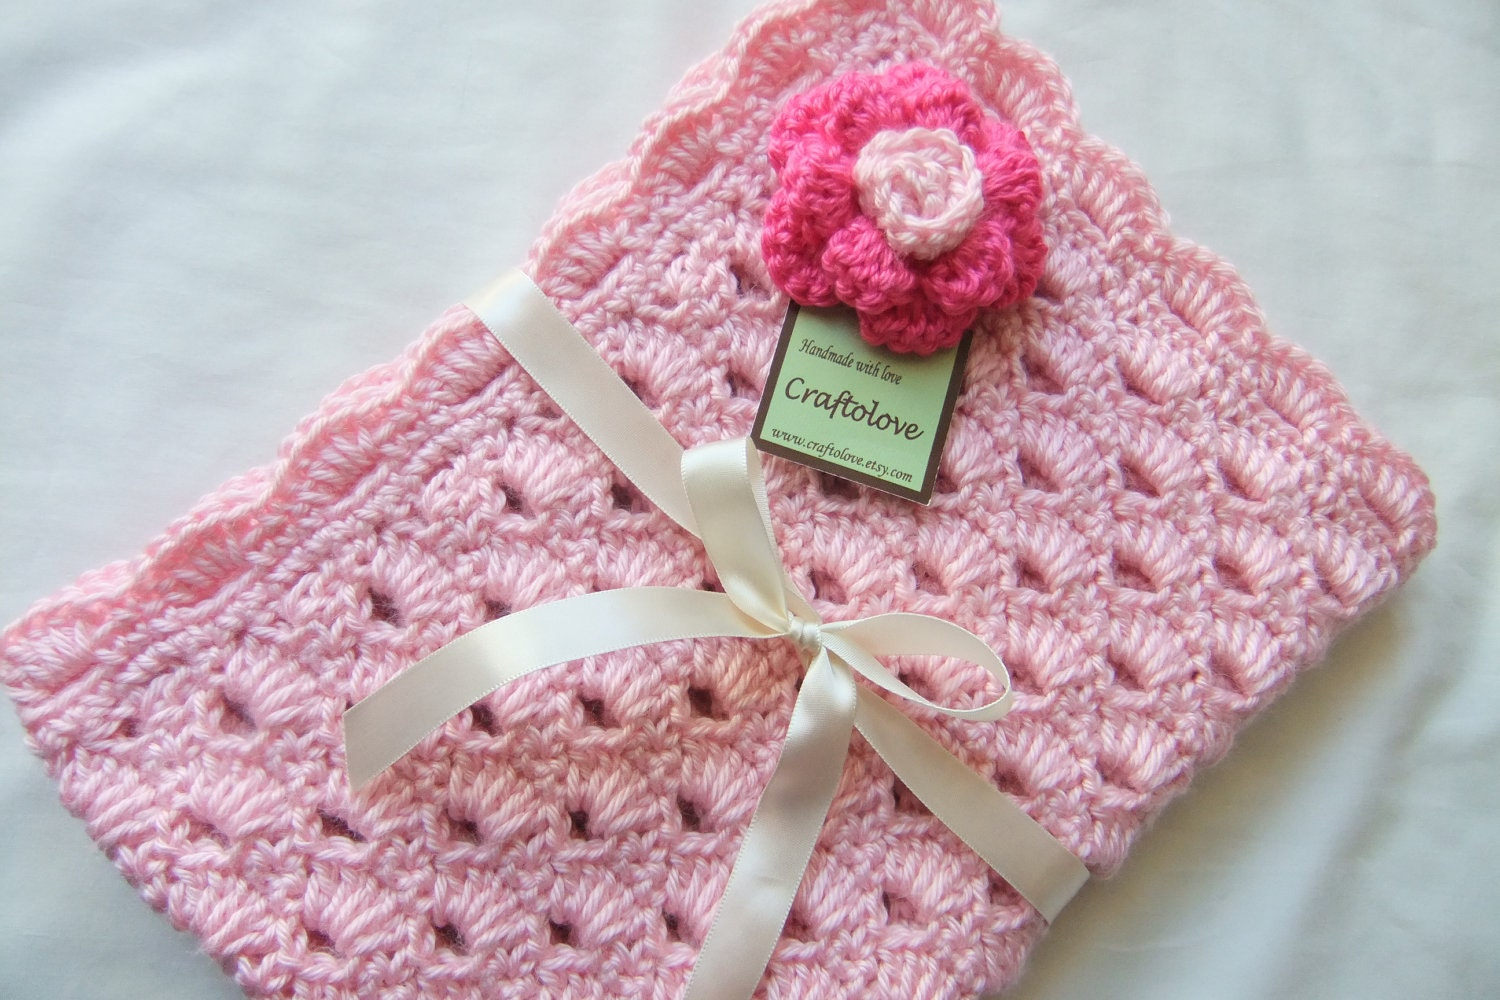 Crocheting Baby Blanket : Baby Girl Blanket Crochet baby blanket Sweet Pink by craftolove